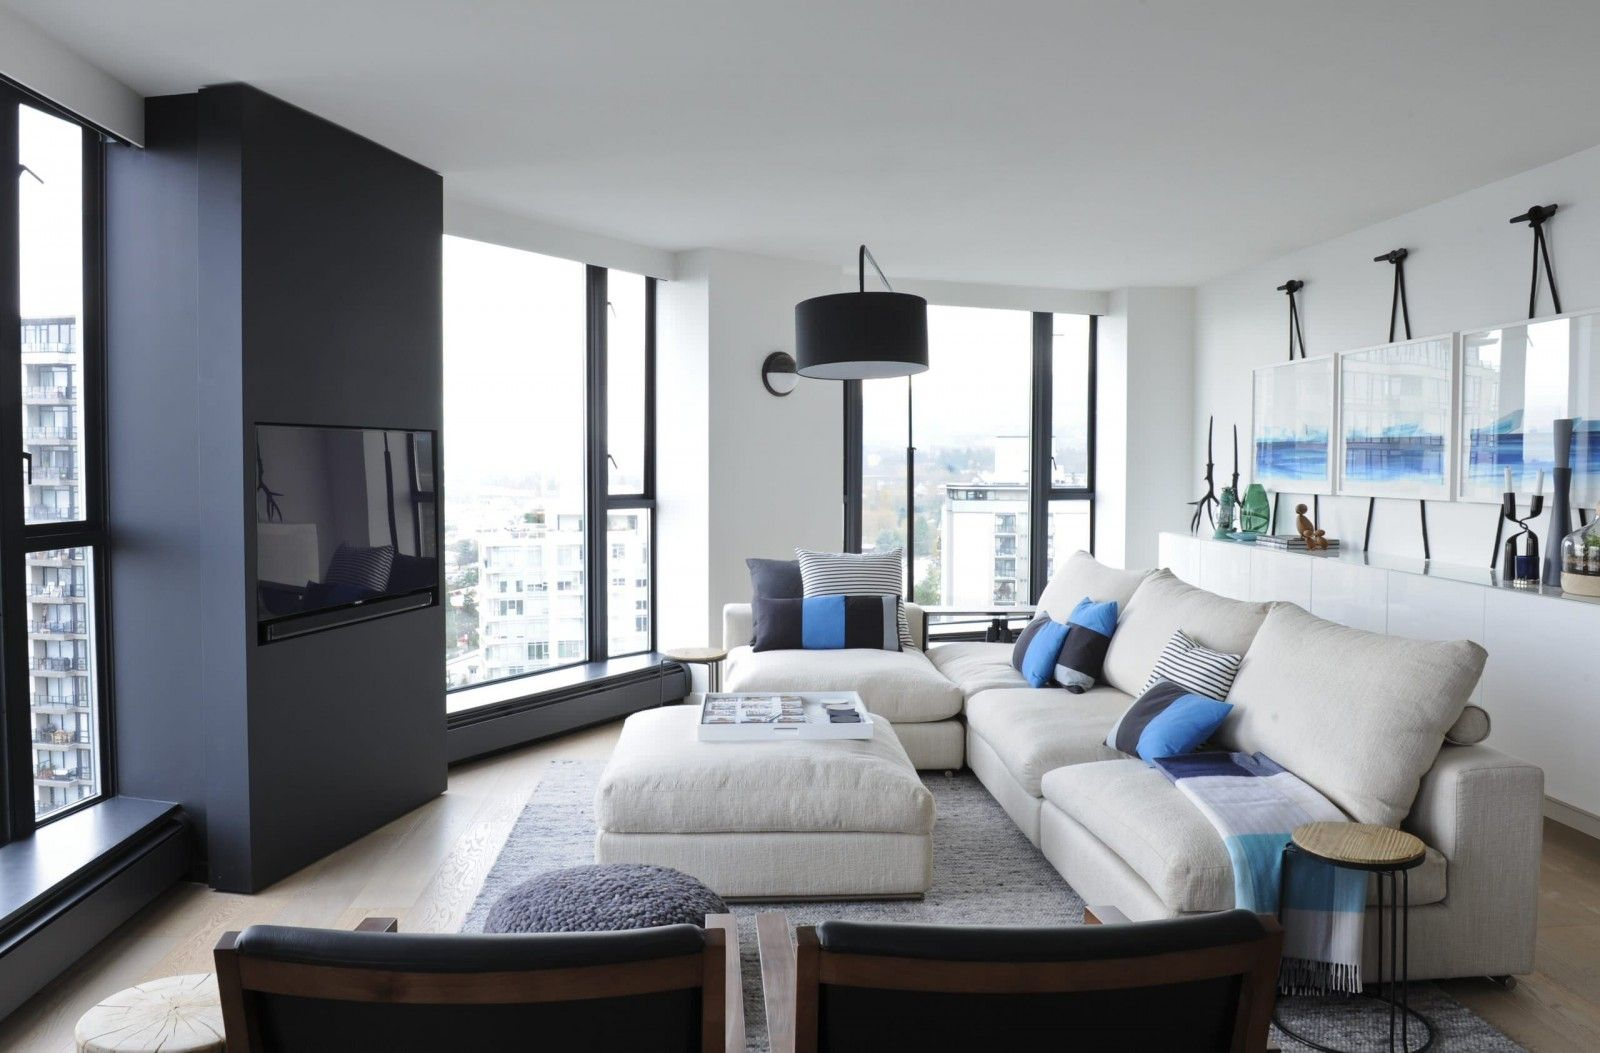 Black and White Interior Combination: Elegant Contrast in Different Rooms. Large semi-circular form of the large living room in open layout apartment